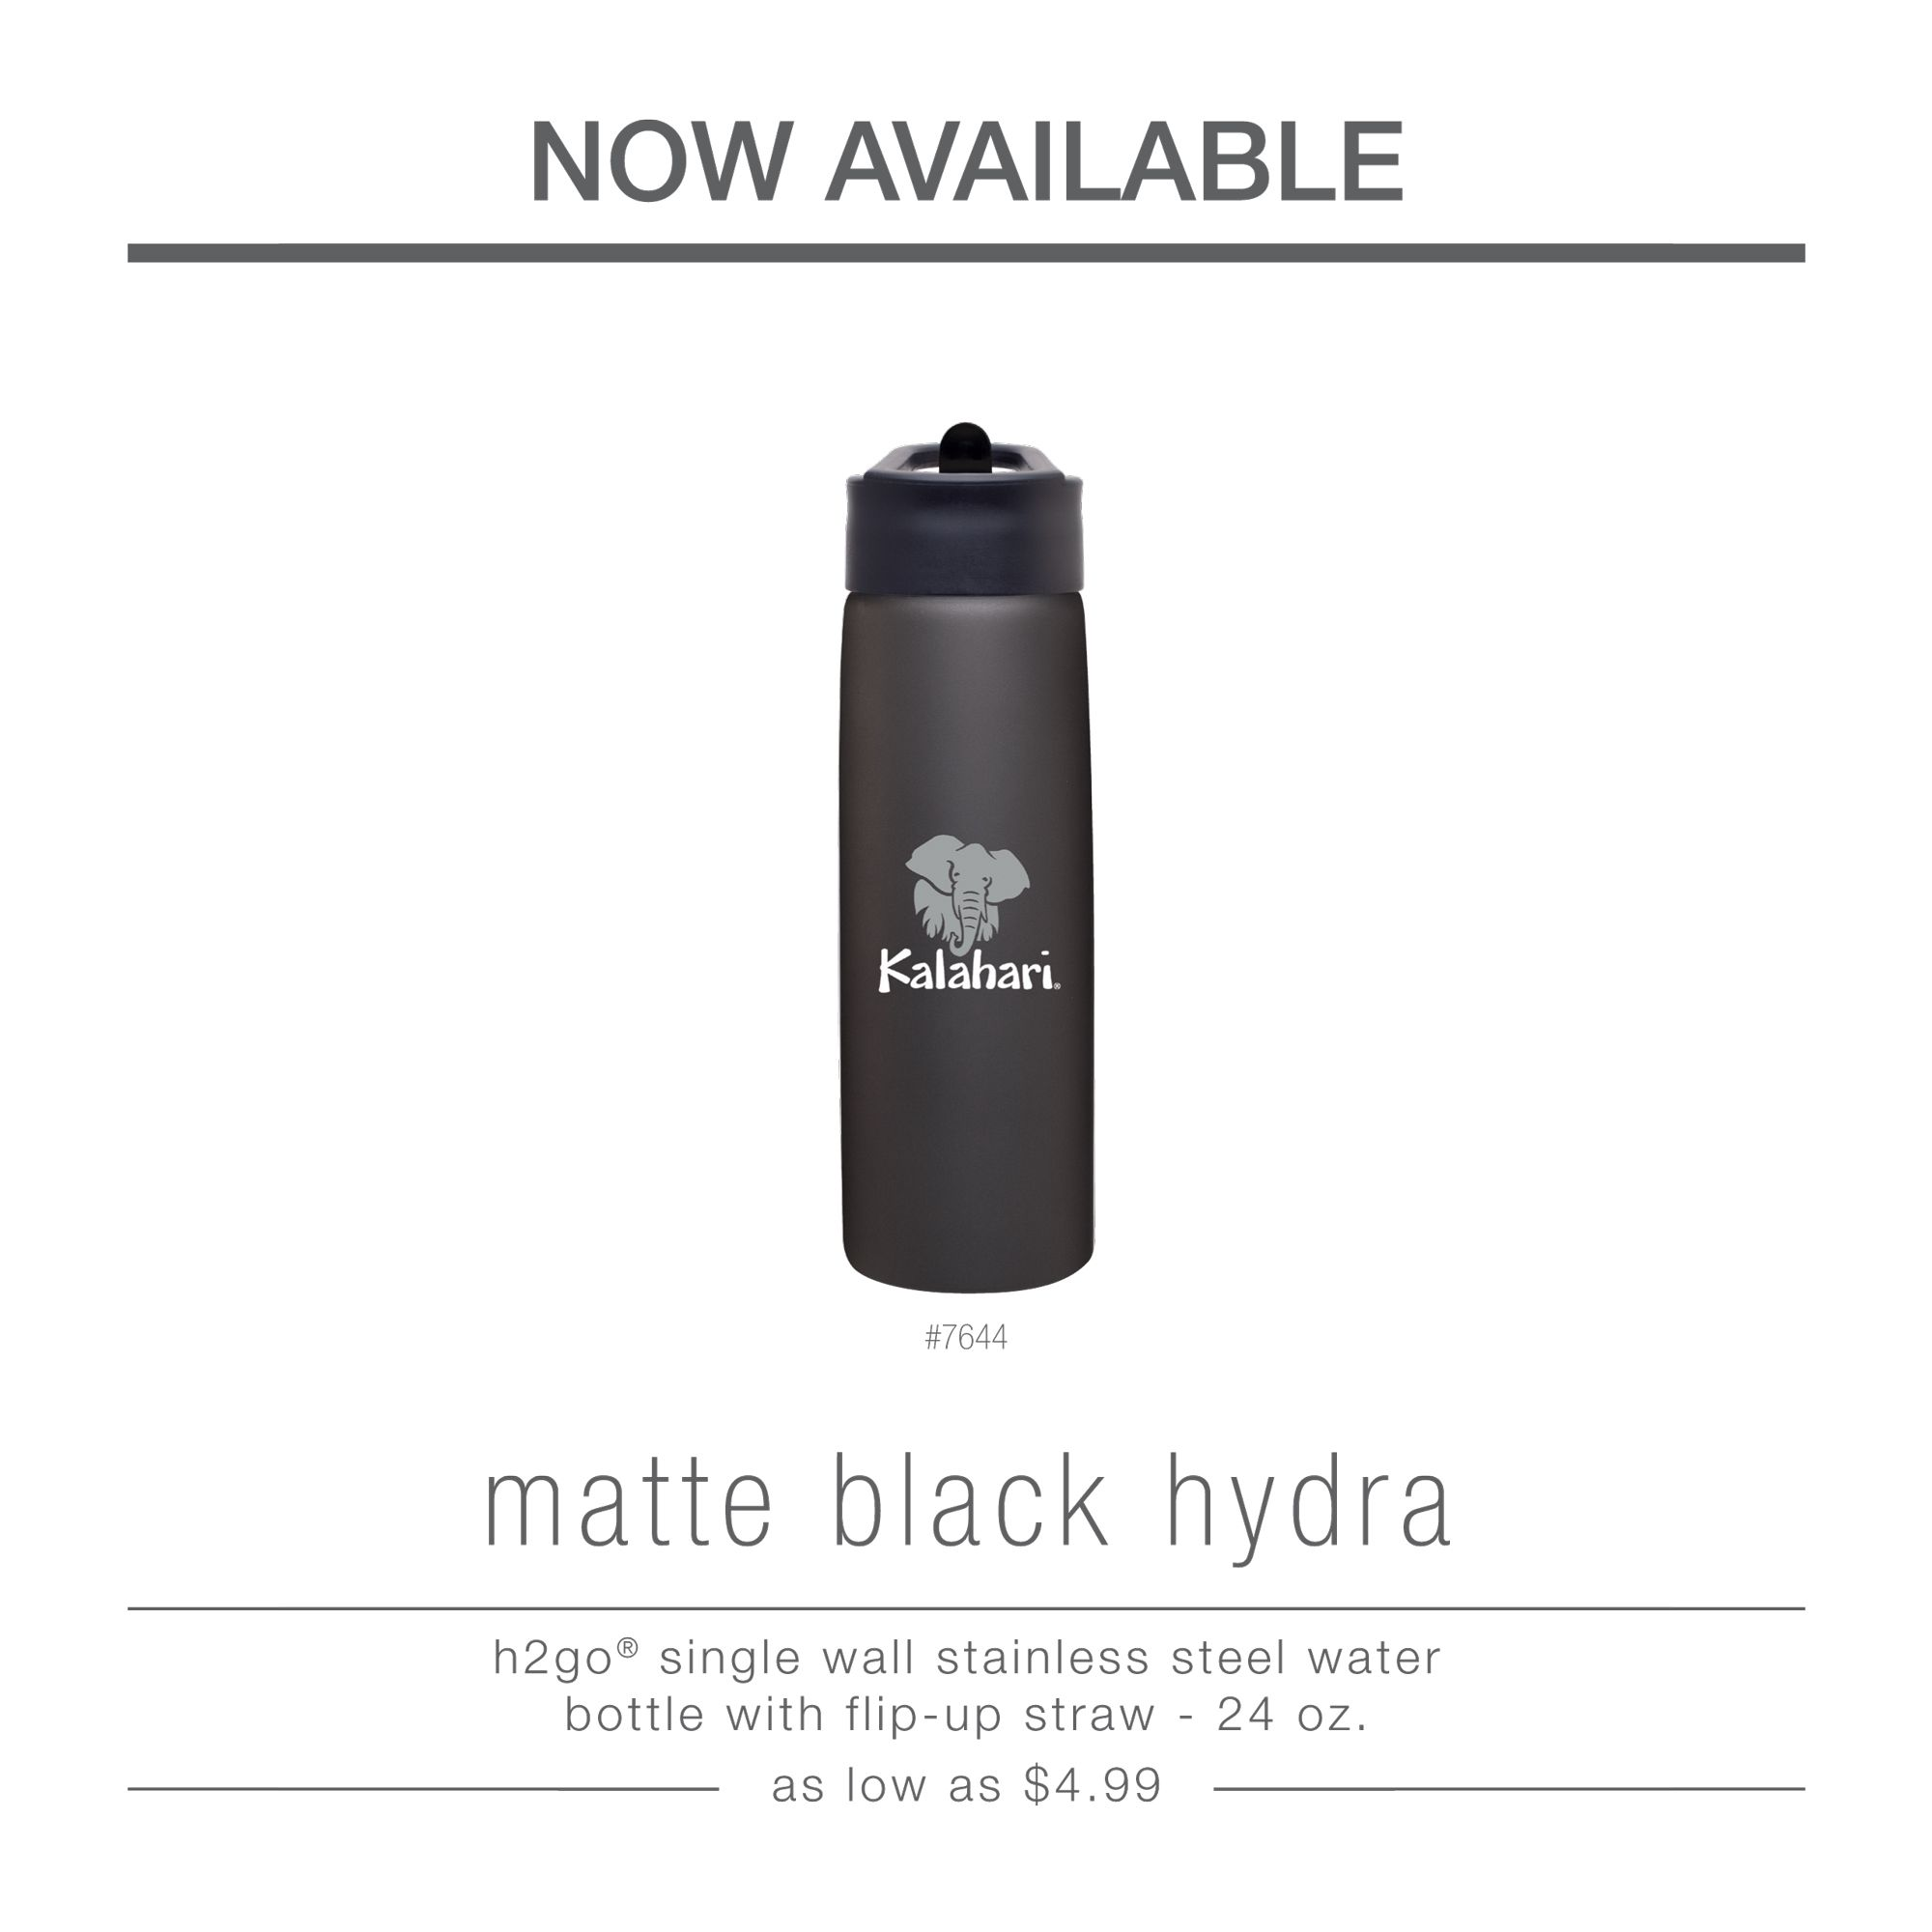 Now online and in stock!  Do you love the matte black bottles we carry? If you do this post is for you! We are now adding the matte black hydra to our stainless steel water bottle line.